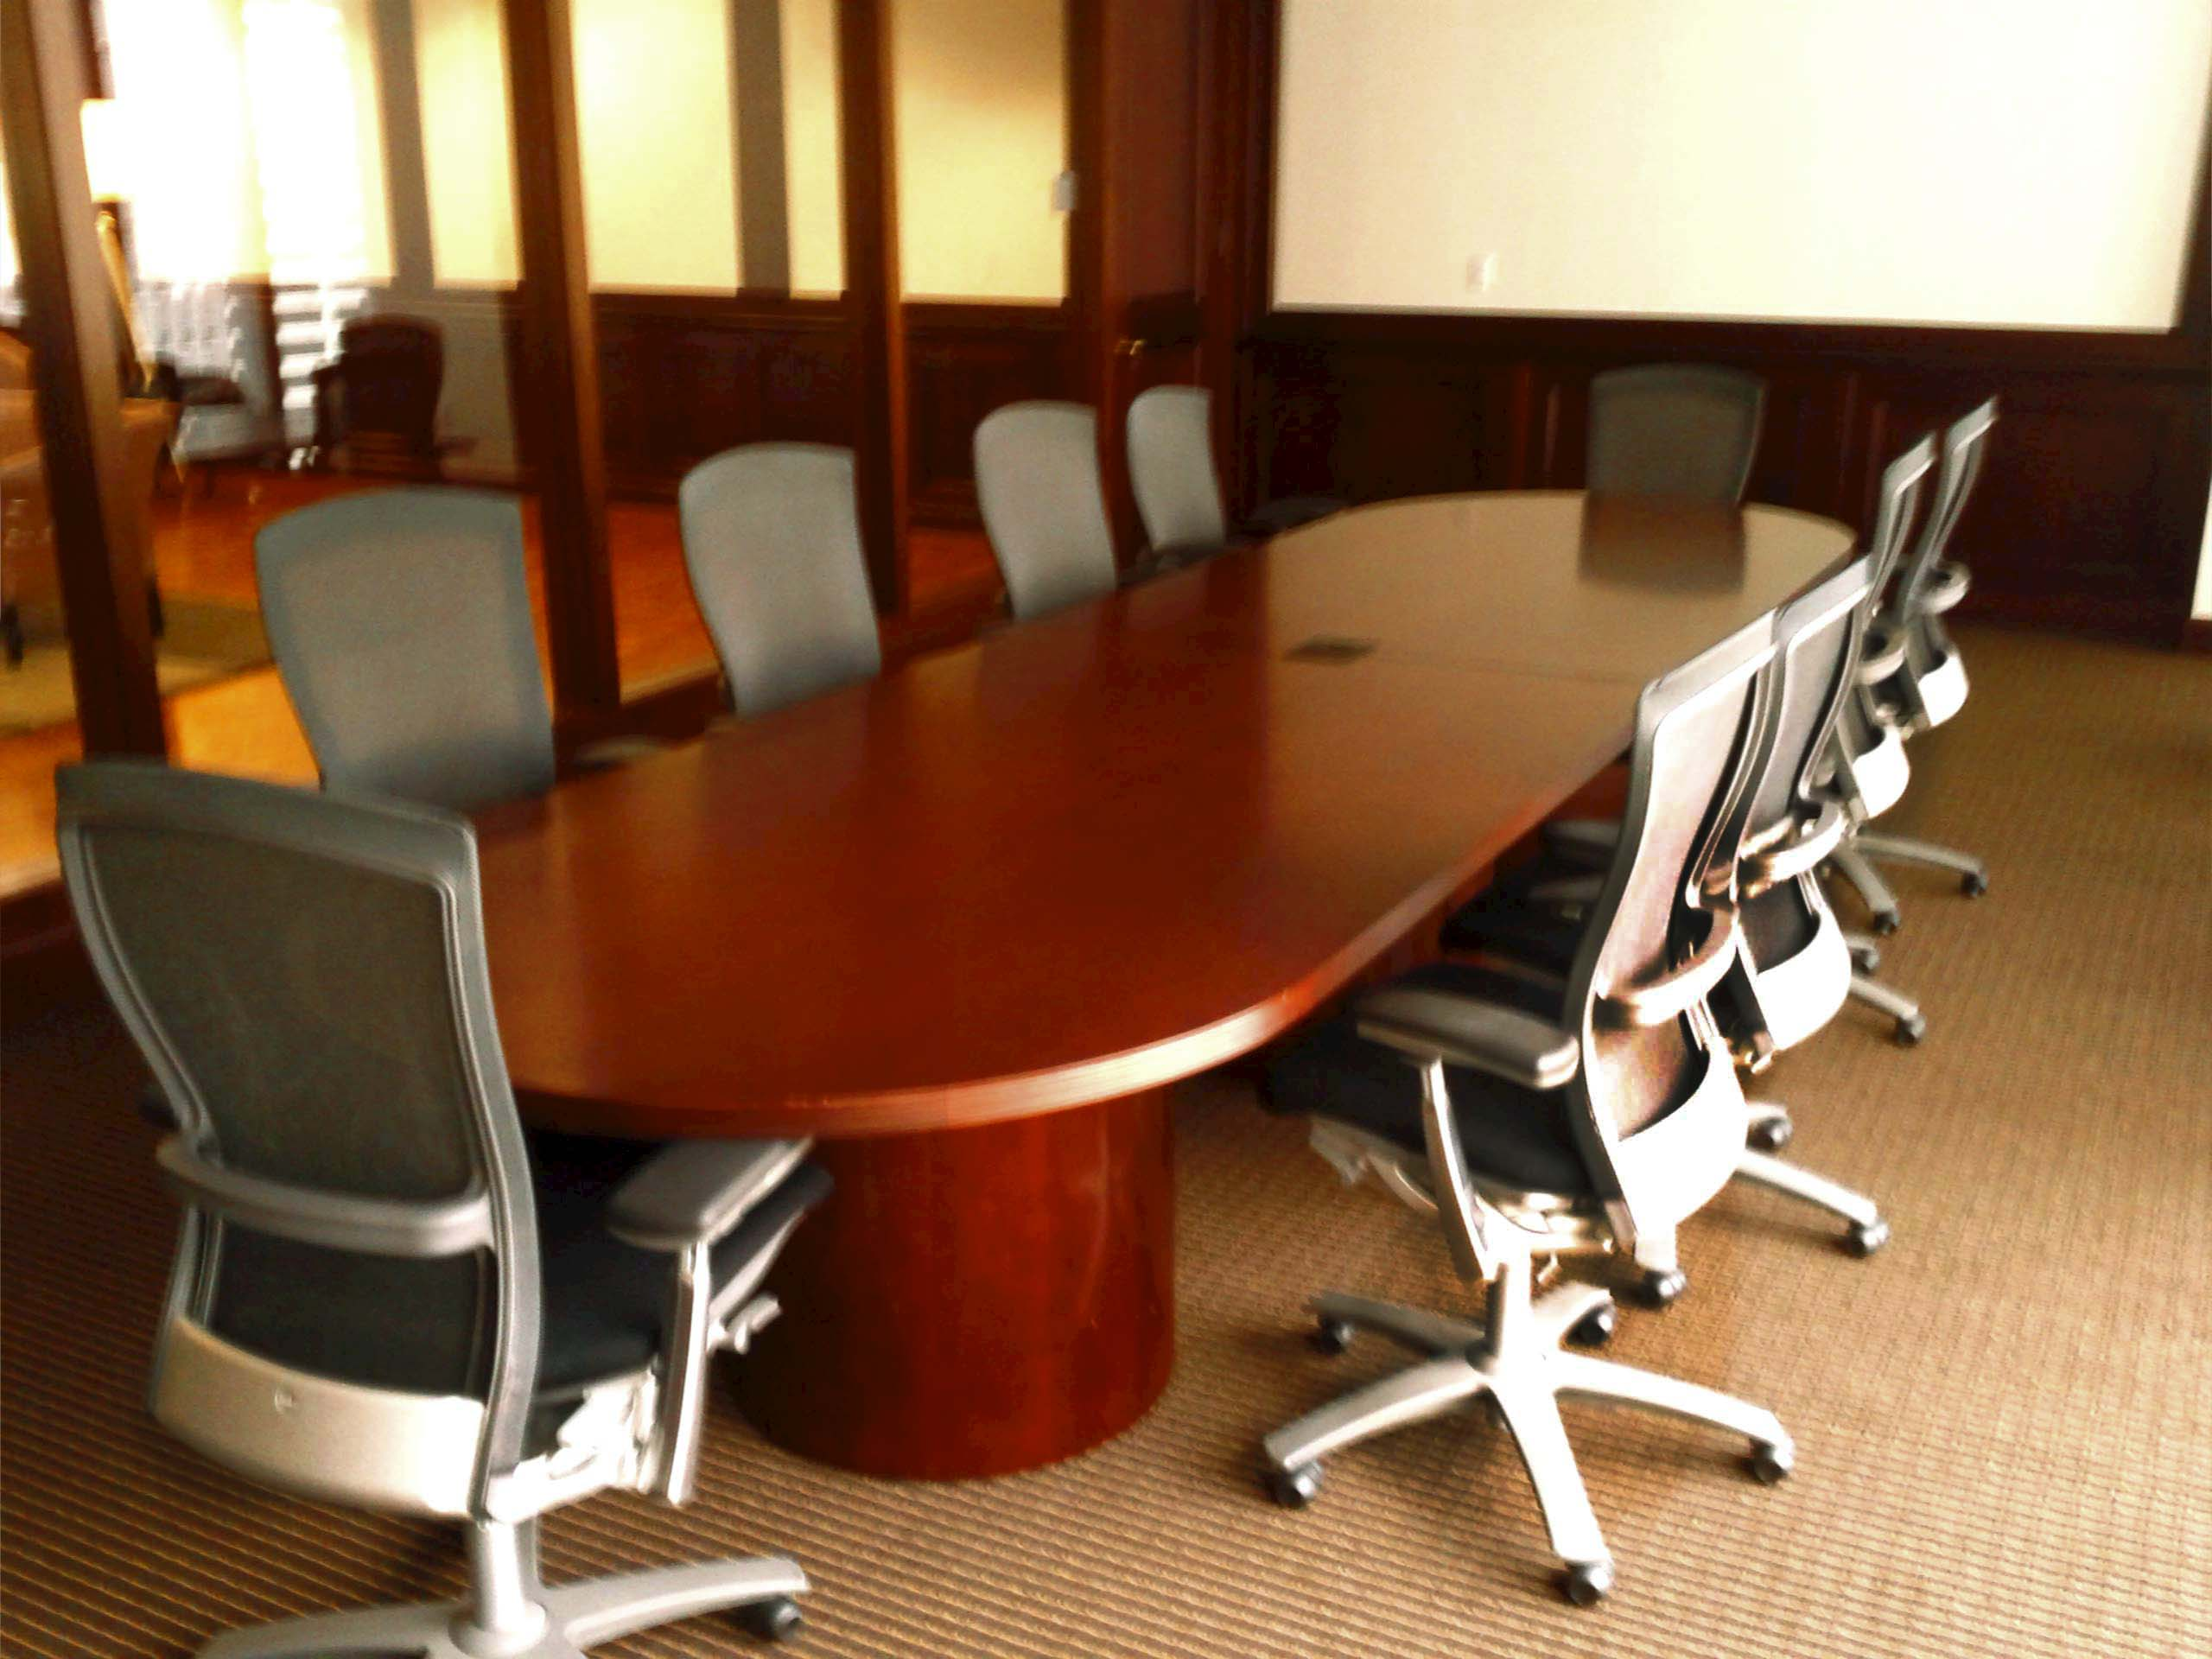 SAVVI Commercial And Office Furniture Affordable And High Quality - 12 foot conference room table